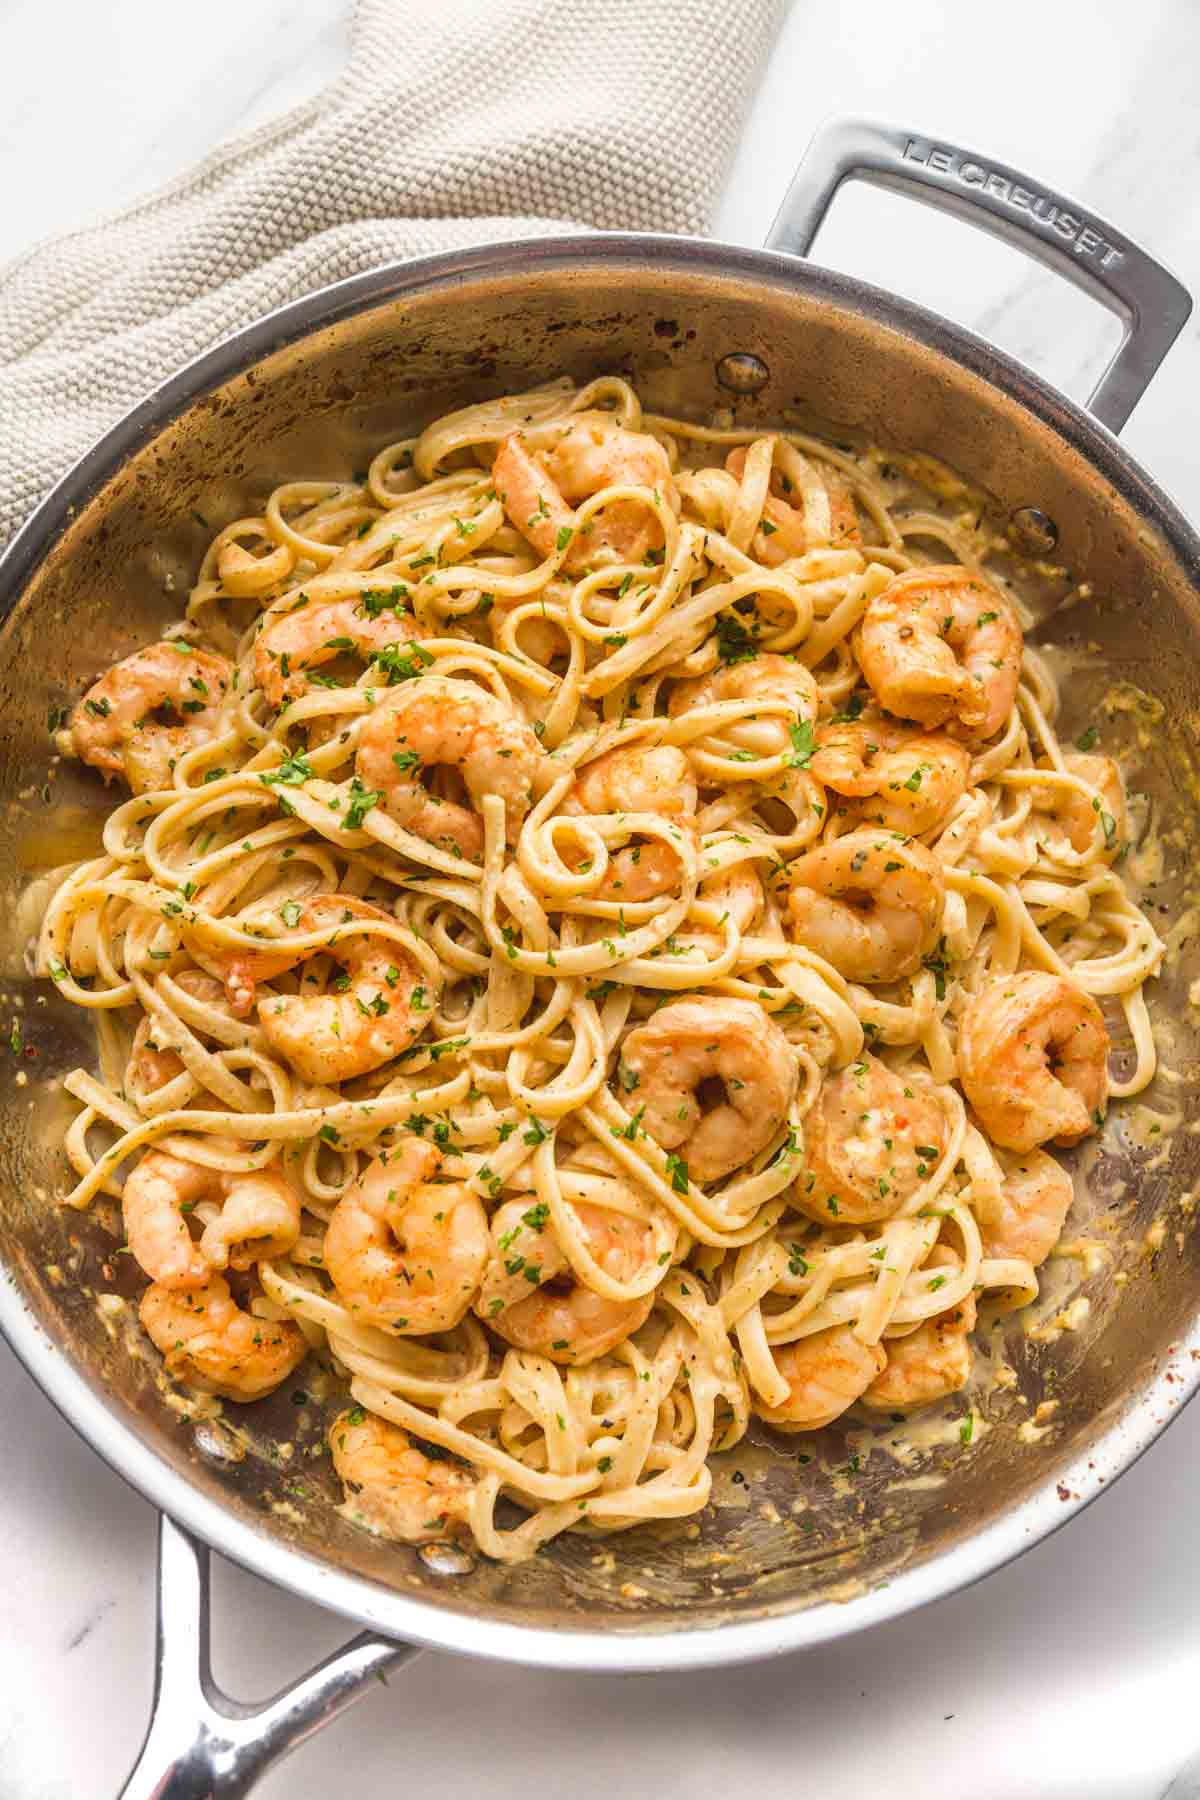 Garlic Butter Shrimp Pasta in a stainless steel Le Creuset pan